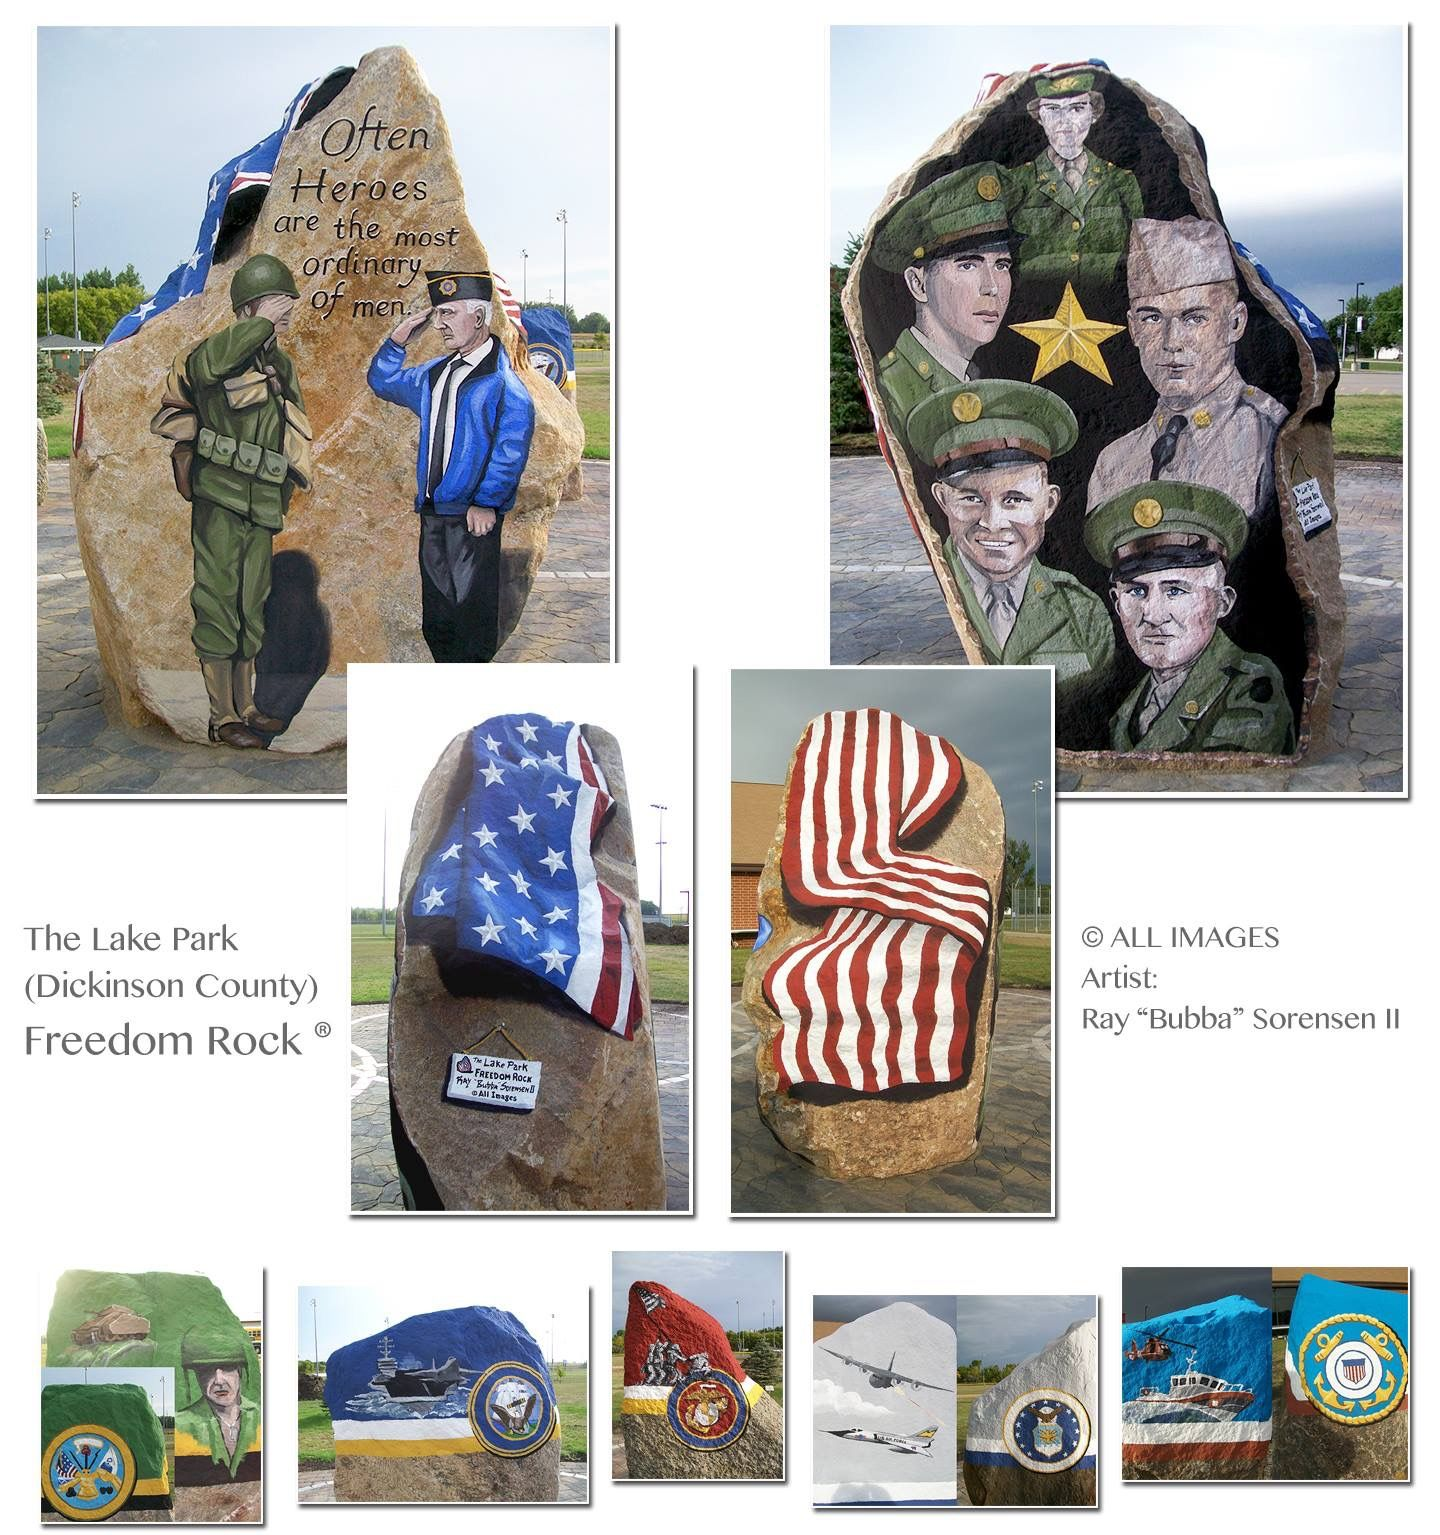 Pin By Debra Williams On Freedom Rocks Painted By Ray Bubba Sorensen Being Painted In Iowa A Different One In Each 99 Counties Rock Freedom Lake Park